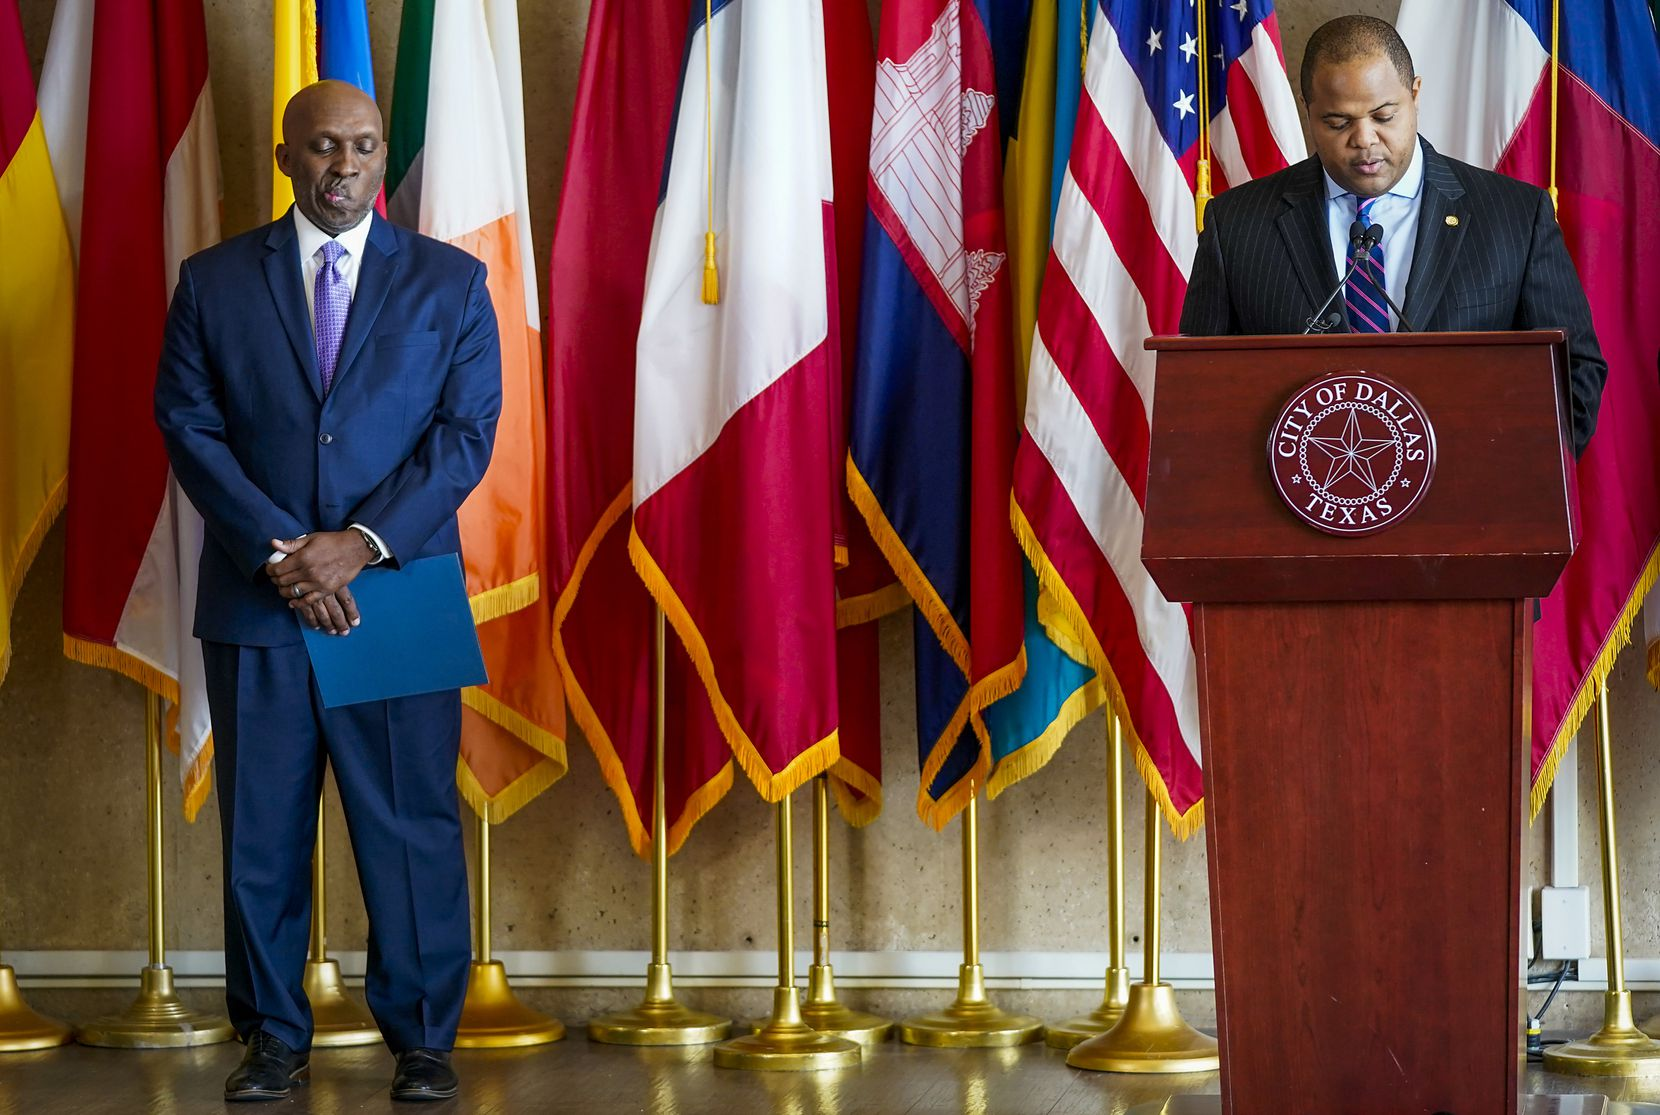 Dallas City Manager T.C. Broadnax (left) listened during a March 16 news conference at City Hall as Dallas Mayor Eric Johnson announced that the city would limit gatherings to 50; close bars, fitness facilities and amusement centers; and limit restaurants to takeout, delivery and drive-through only in response to the pandemic.